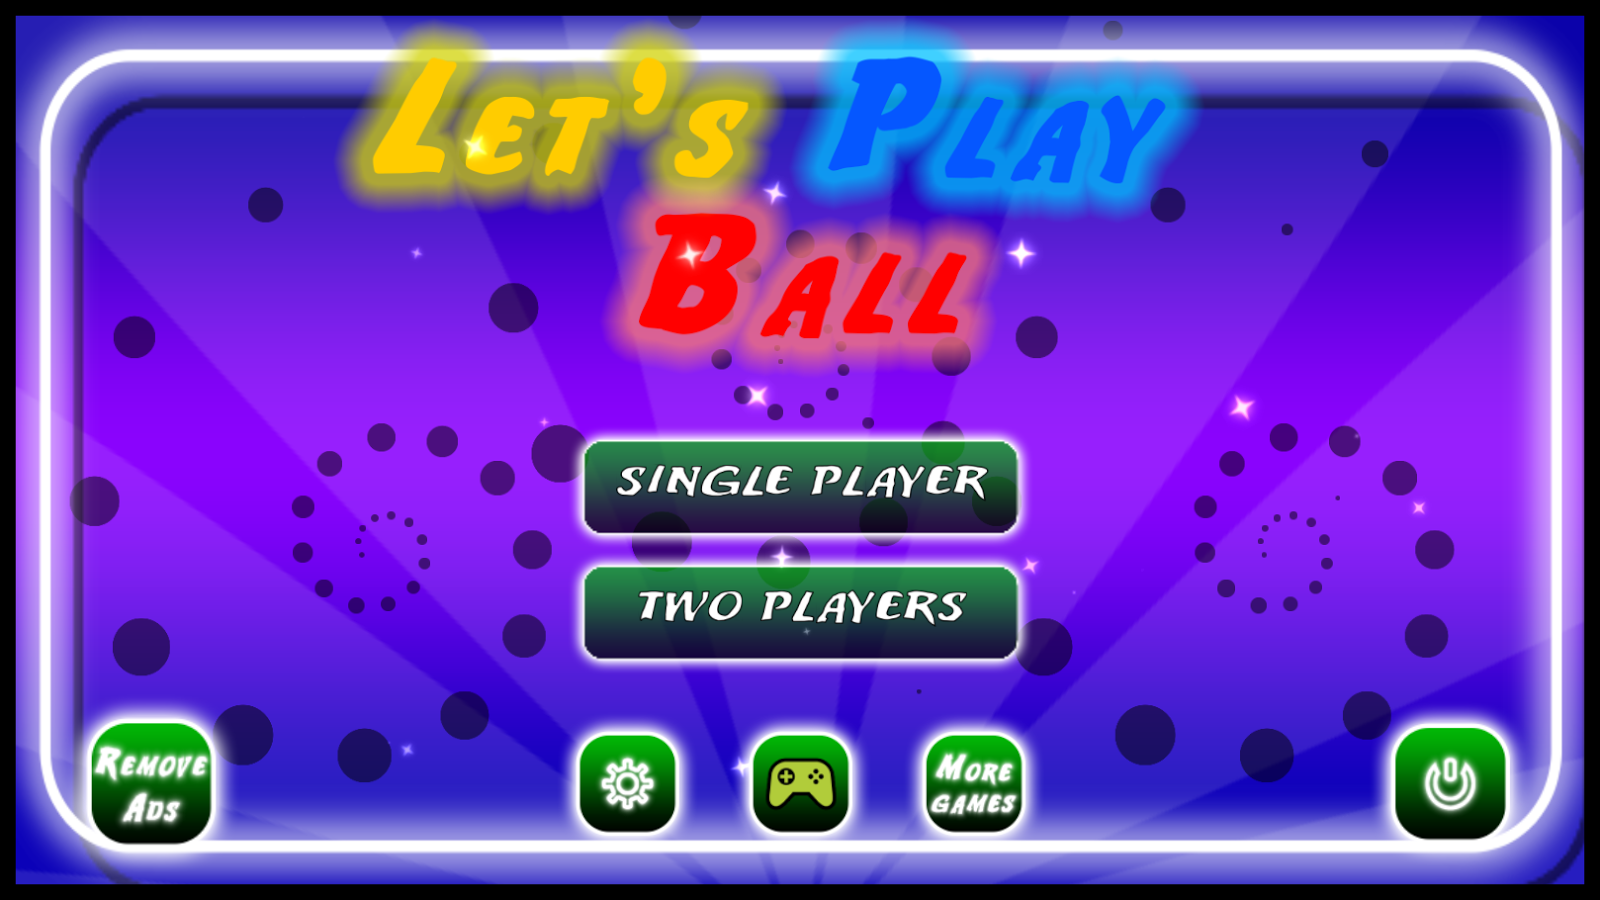 Let's Play Ball- screenshot